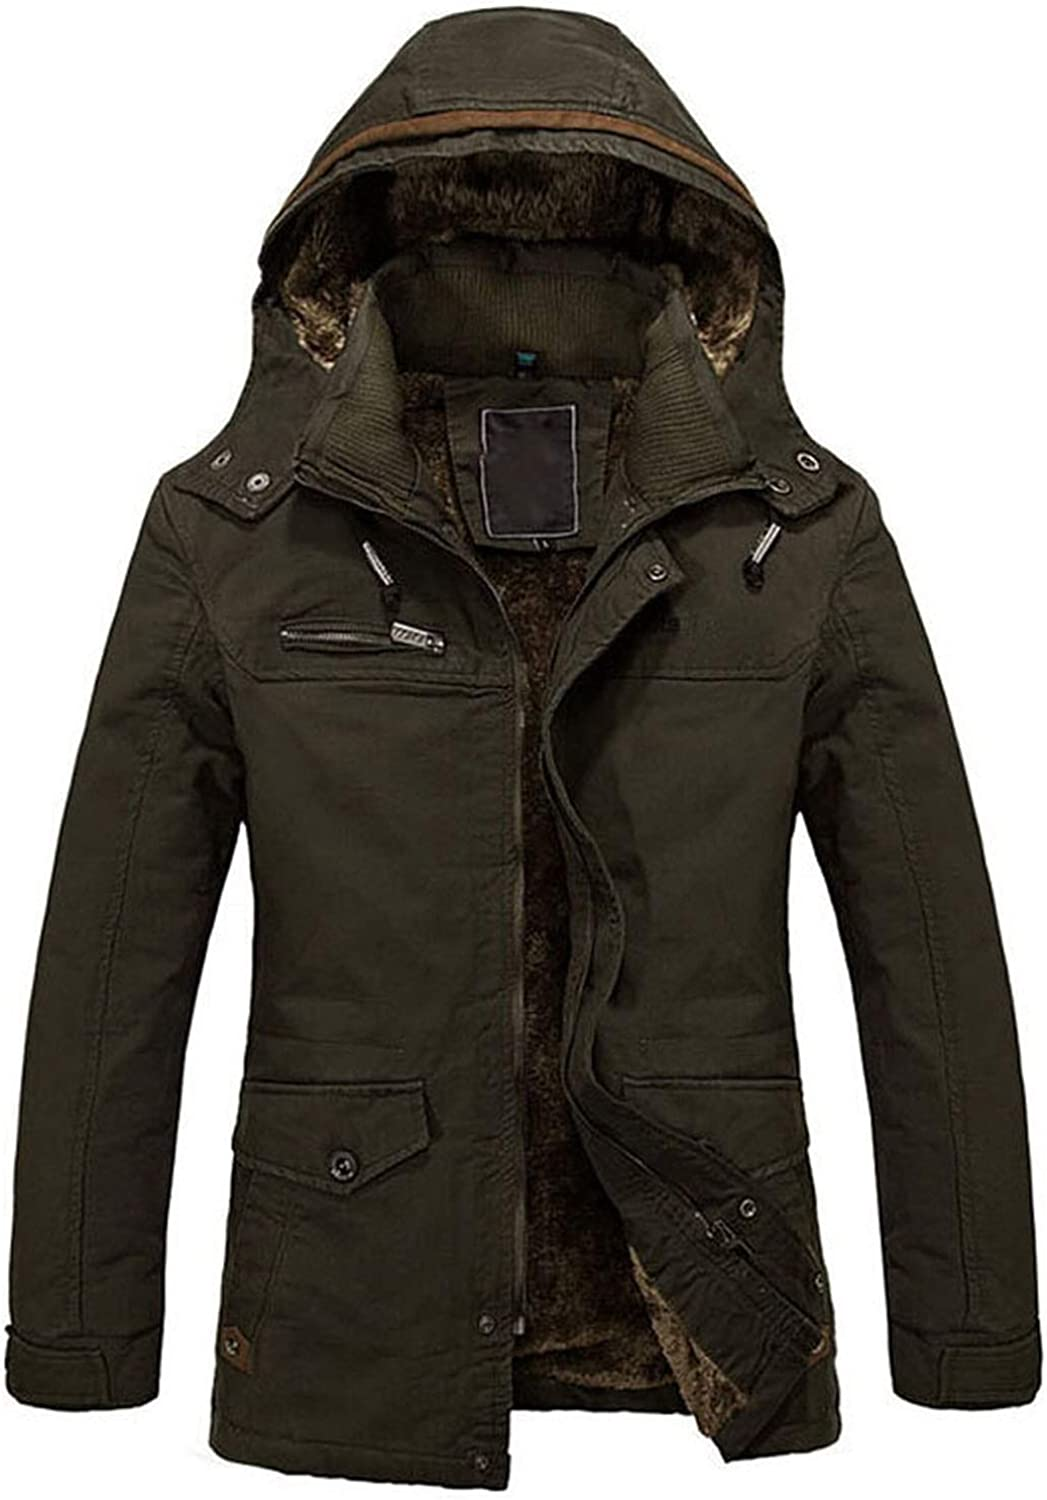 Winter Men Jackets Coats Leisure Windproof Thick Warm Jacket Mens Long Trench Coat Parka,Army Green,4XL